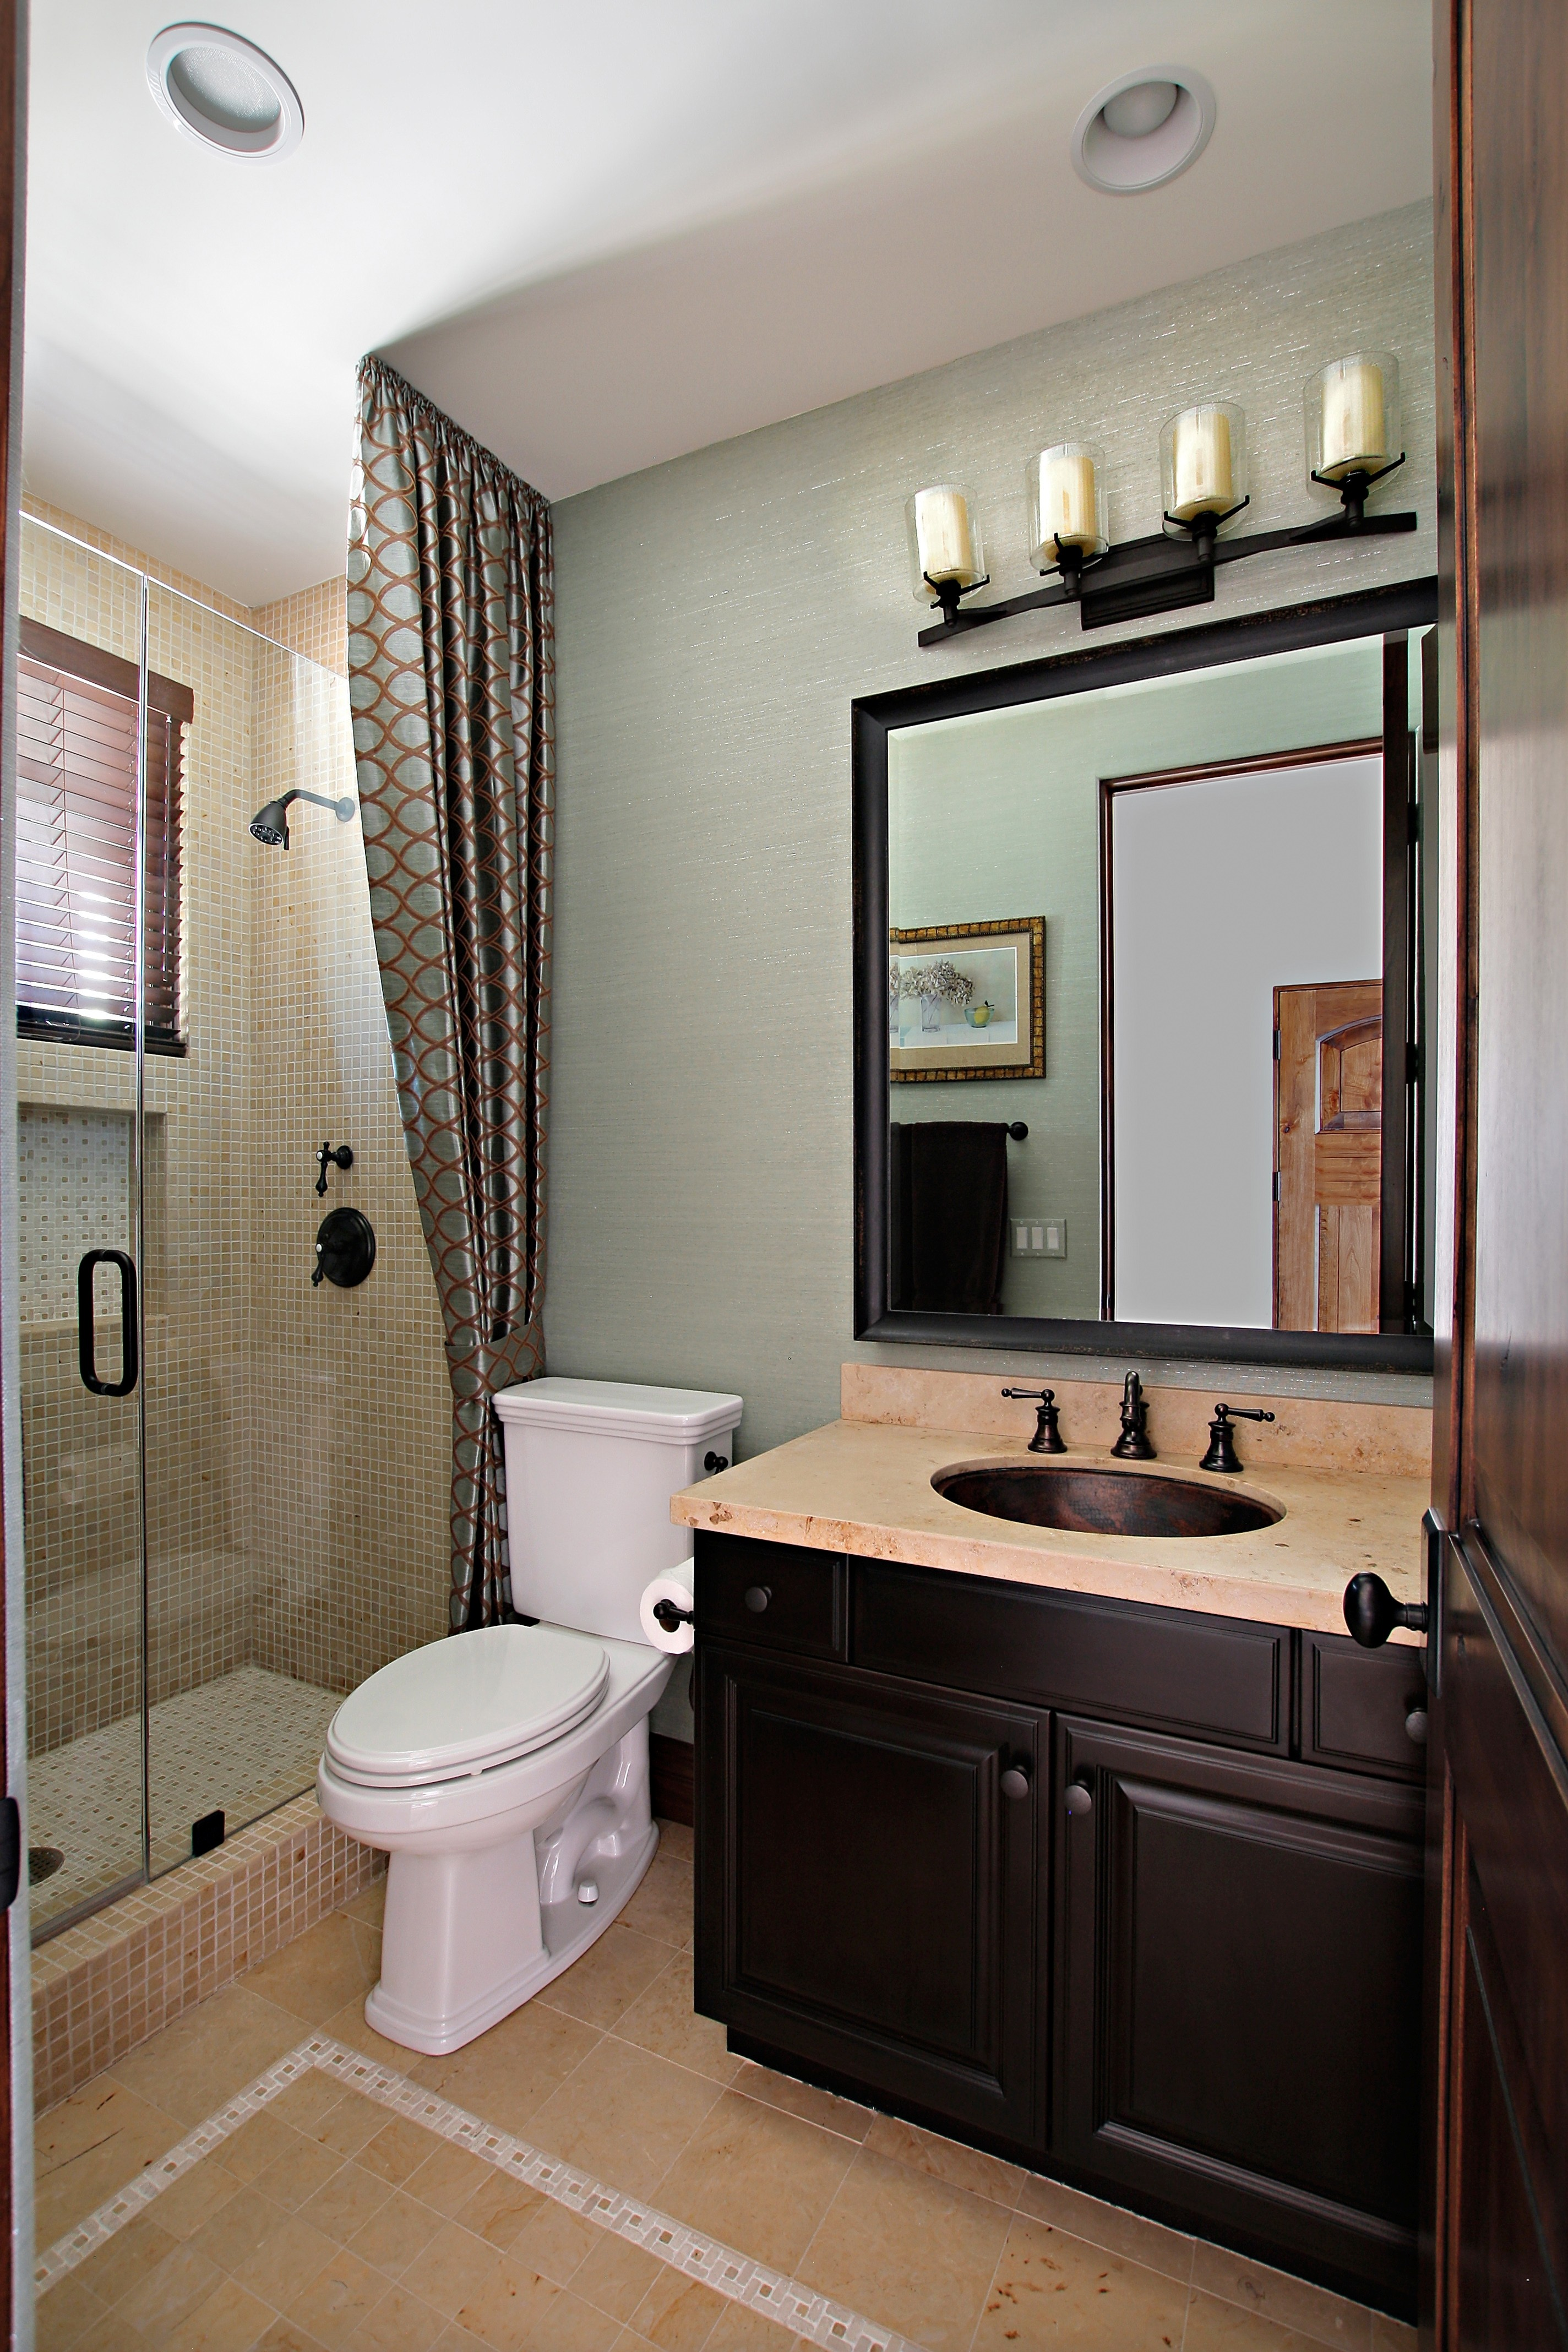 Guest Bathroom Ideas Awesome Eye Catching Download Guest Bathroom Decorating Ideas In Photograph